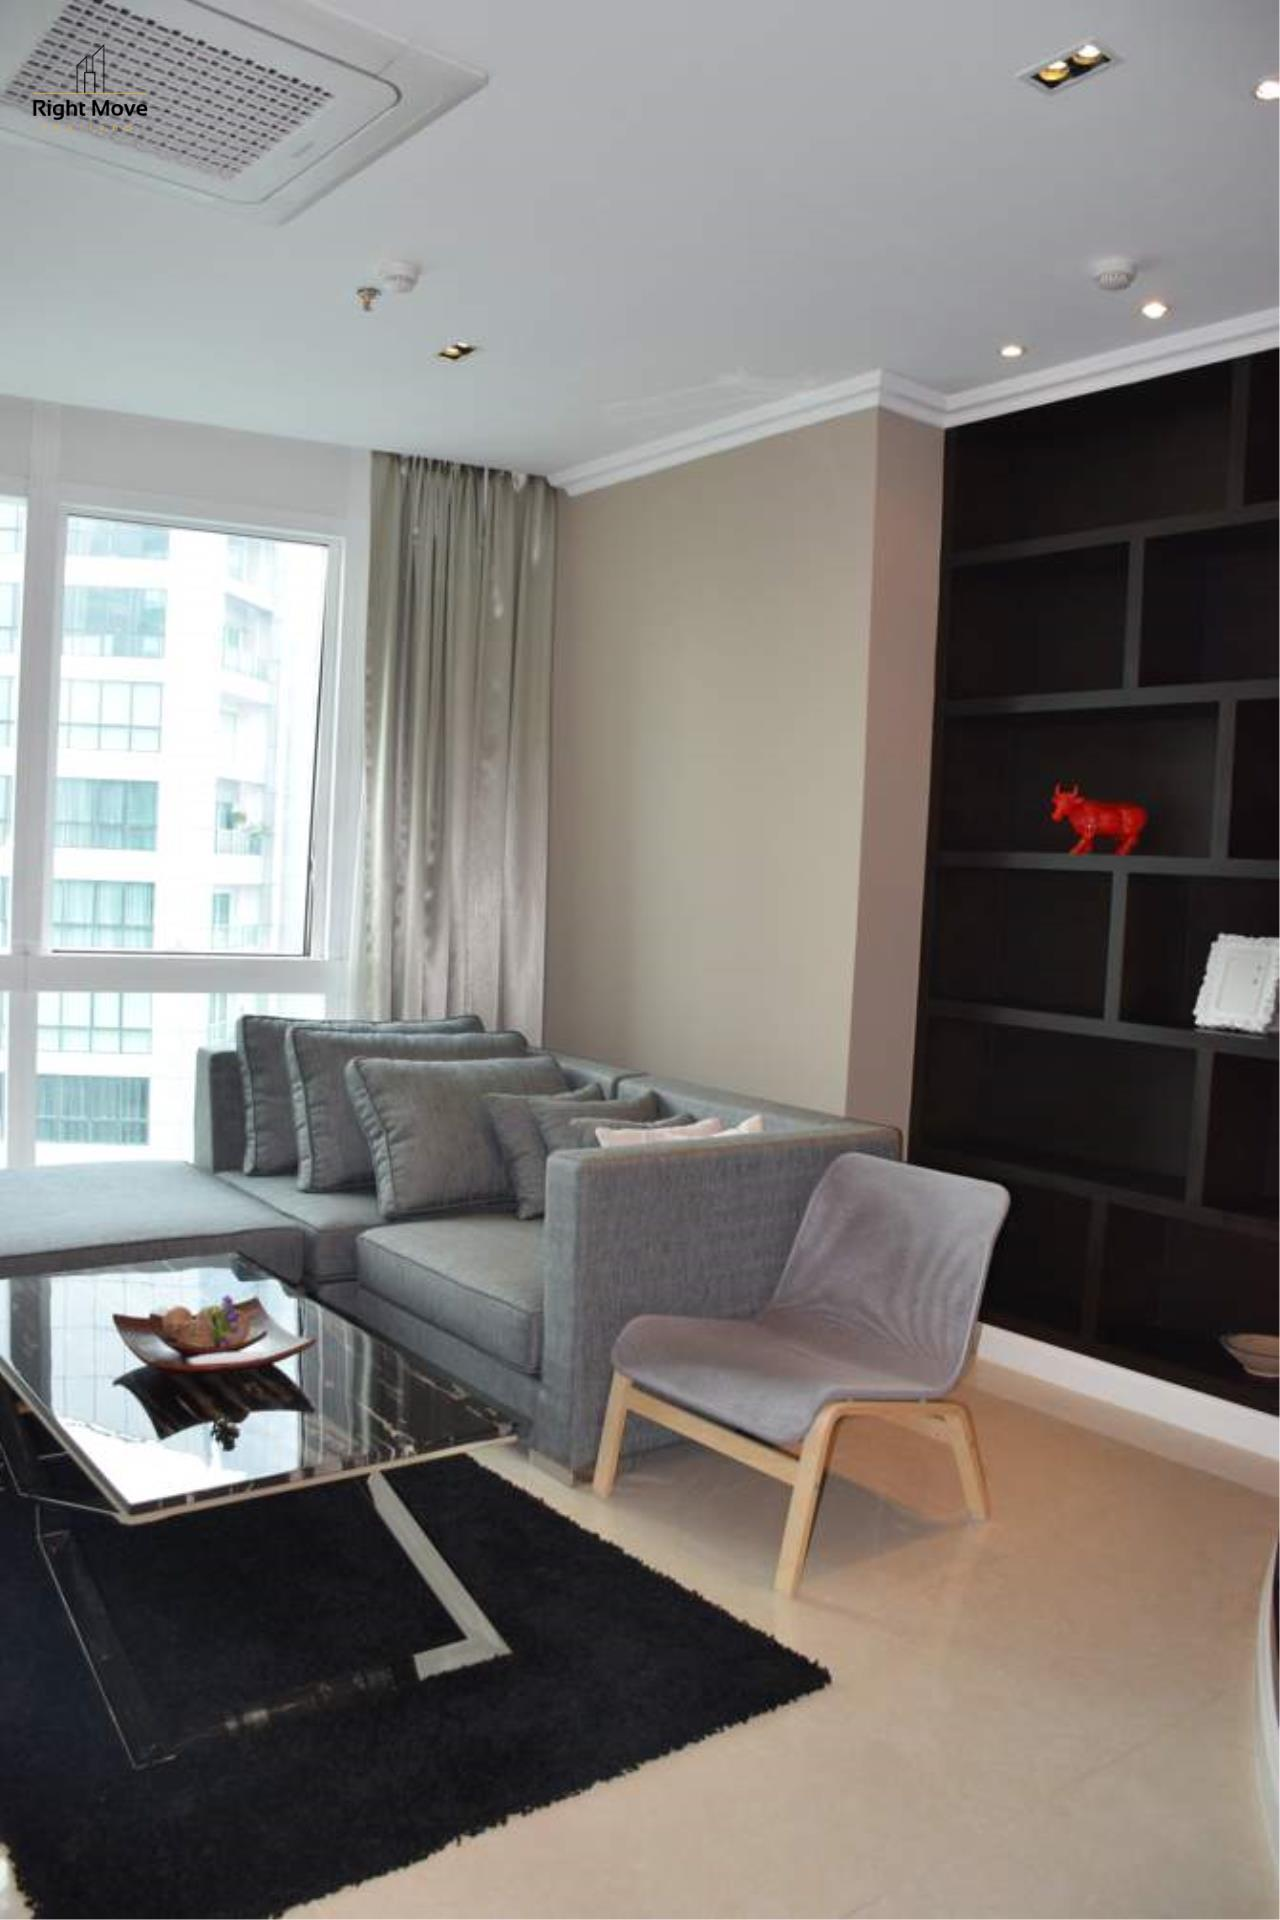 Right Move Thailand Agency's CA4297 Penthouse Duplex Millennium Residence For Rent - 250,000 THB - 316.85 Sqm 5